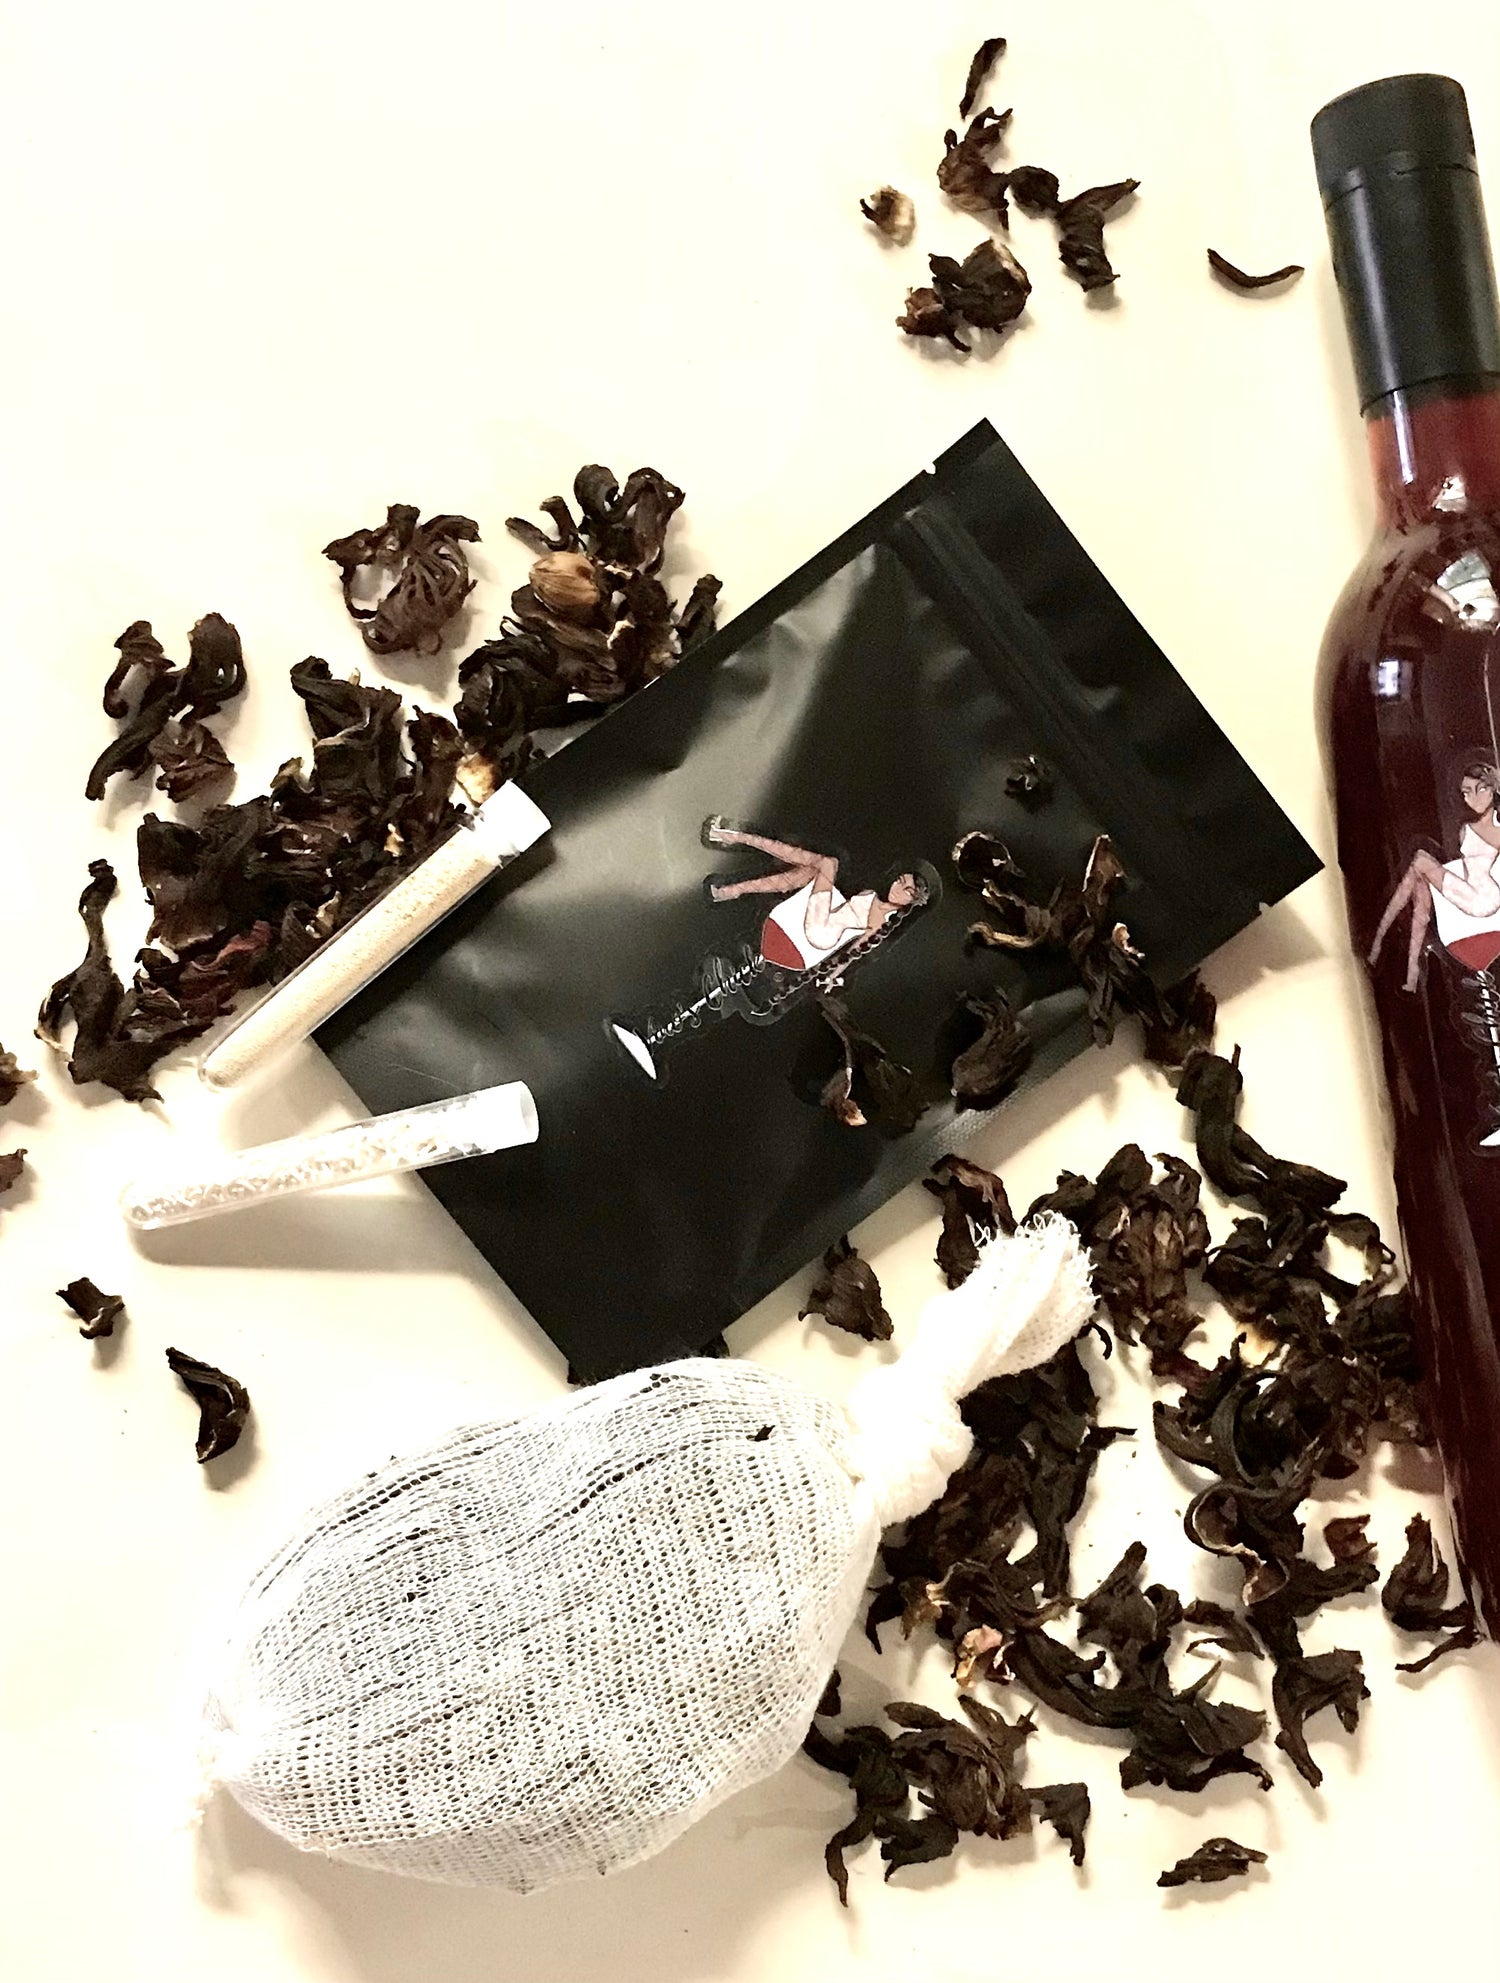 Image of Winemaking Kits for Beginners